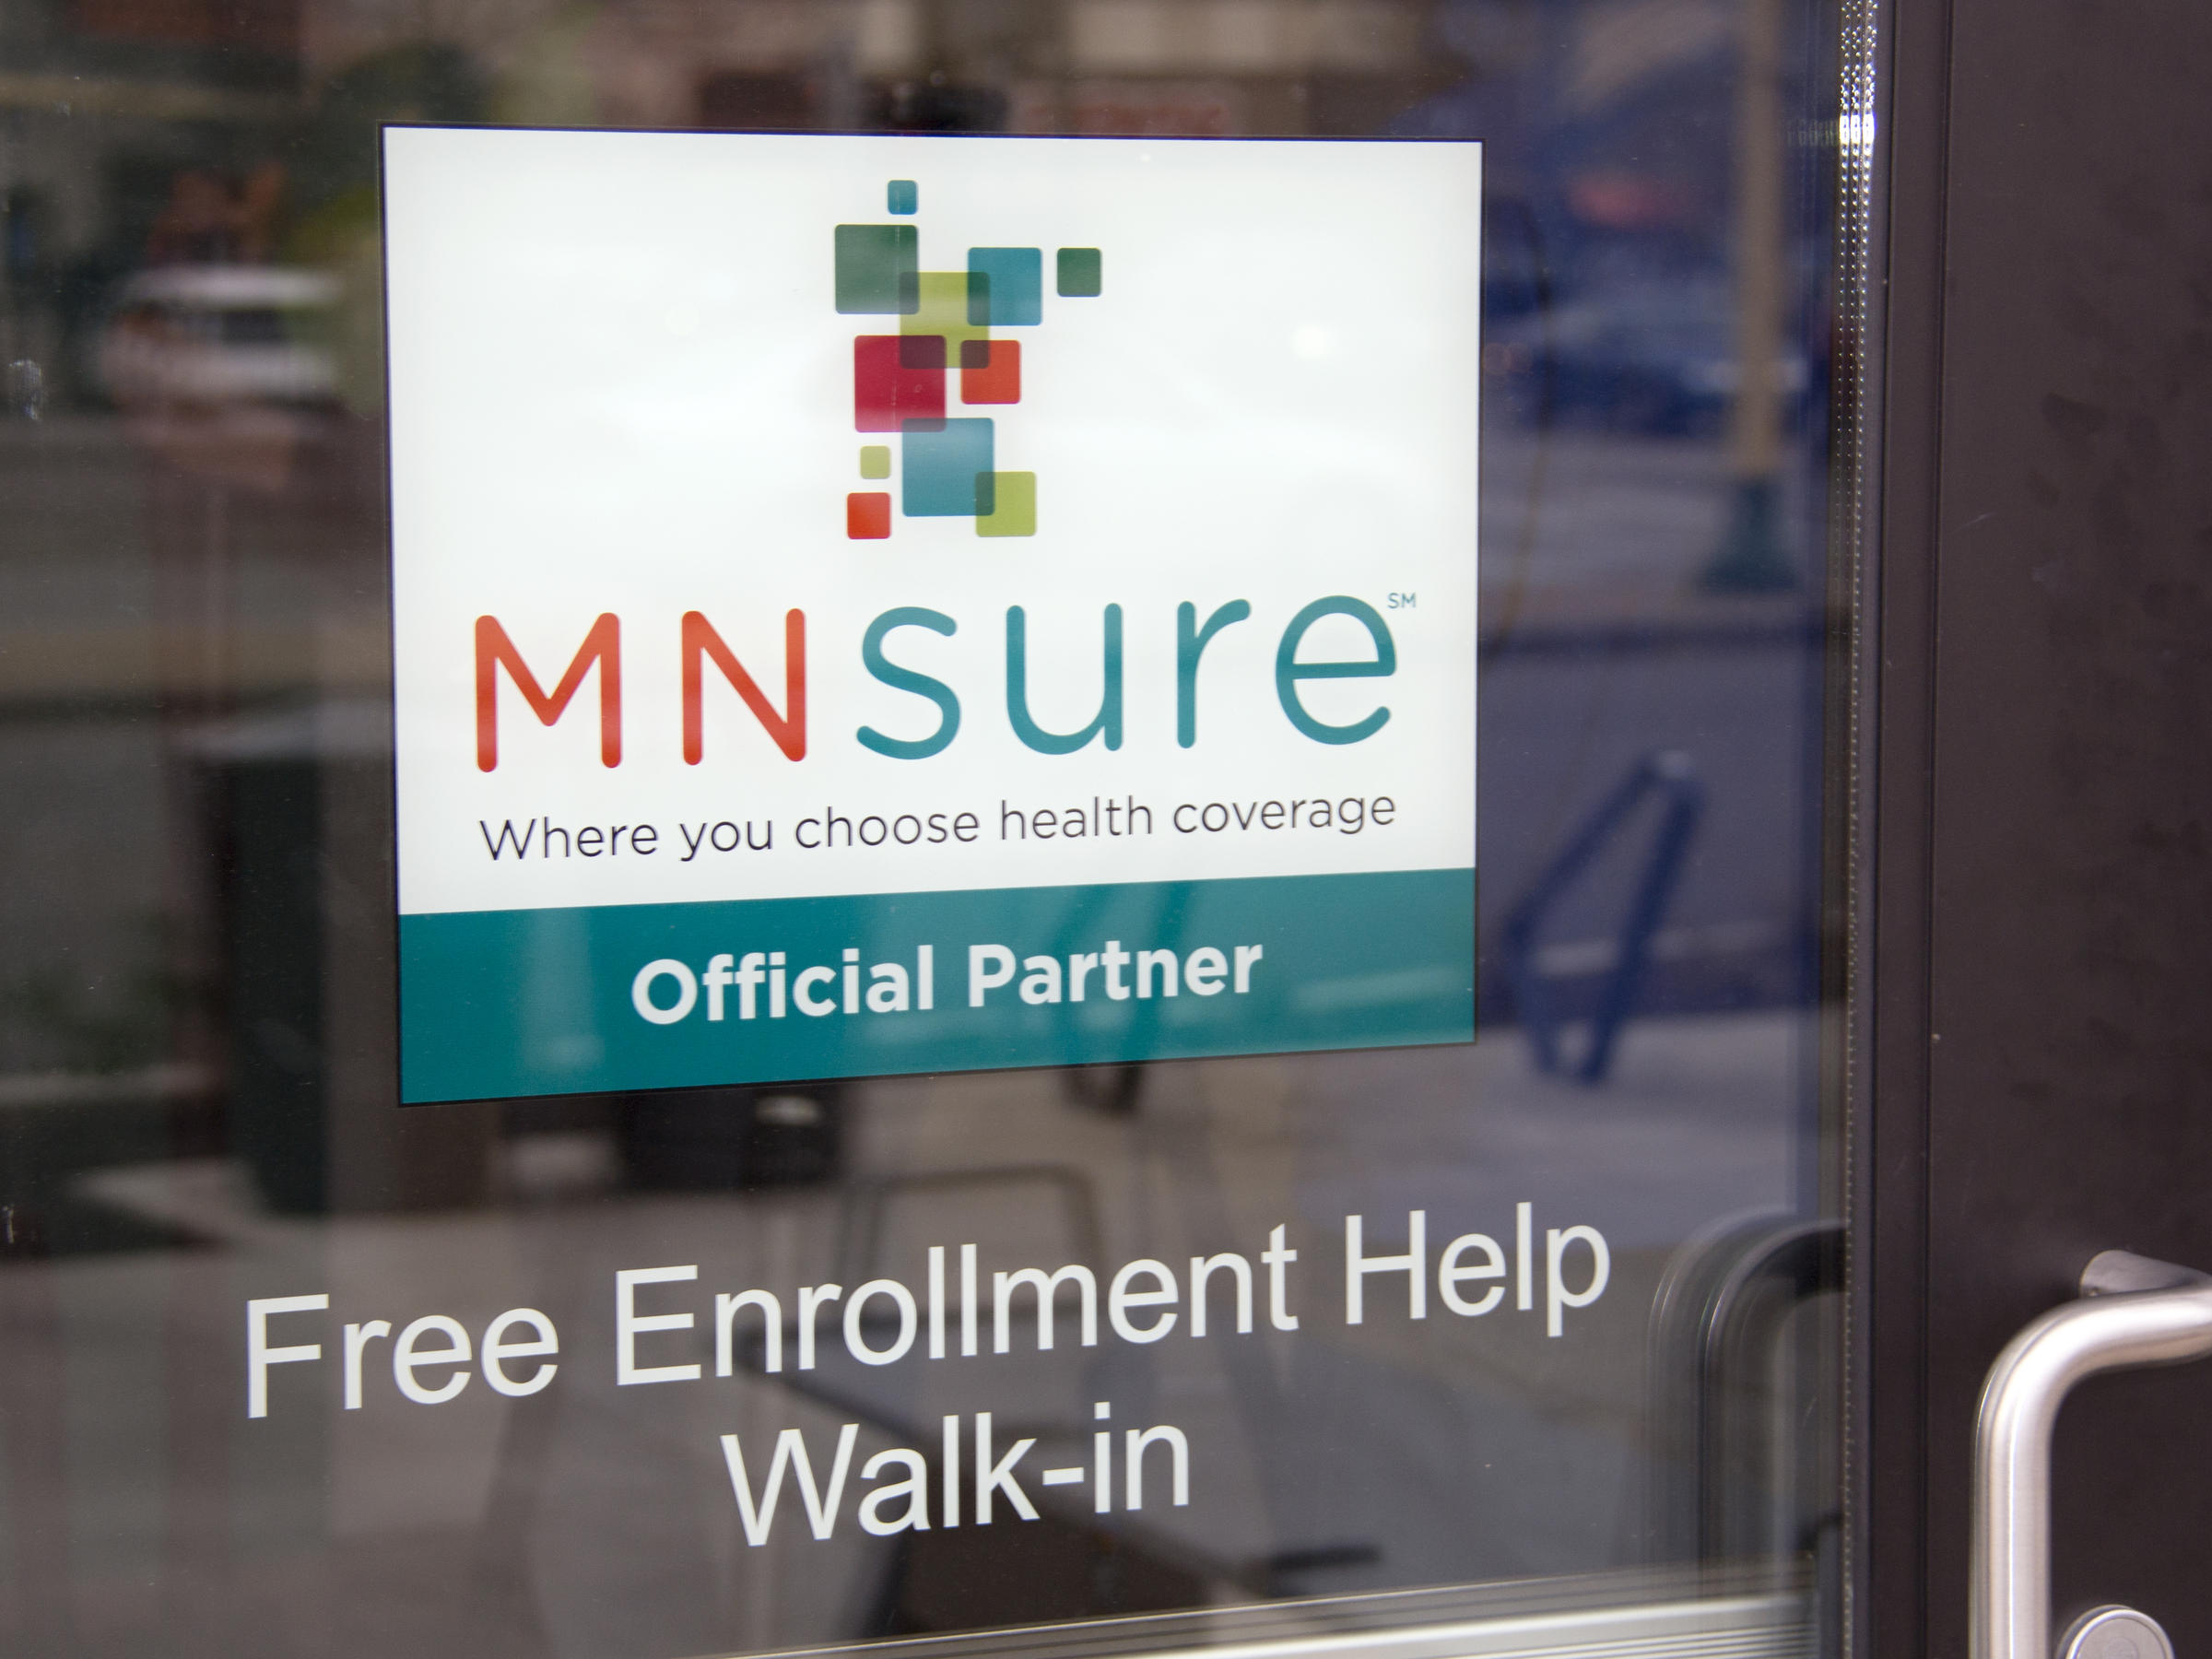 Minnesotas Aca Insurance Exchange Mnsure Is Spending State Money This Year To Hire Health Care Navigators Who Reach Out To Consumers To Answer Questions